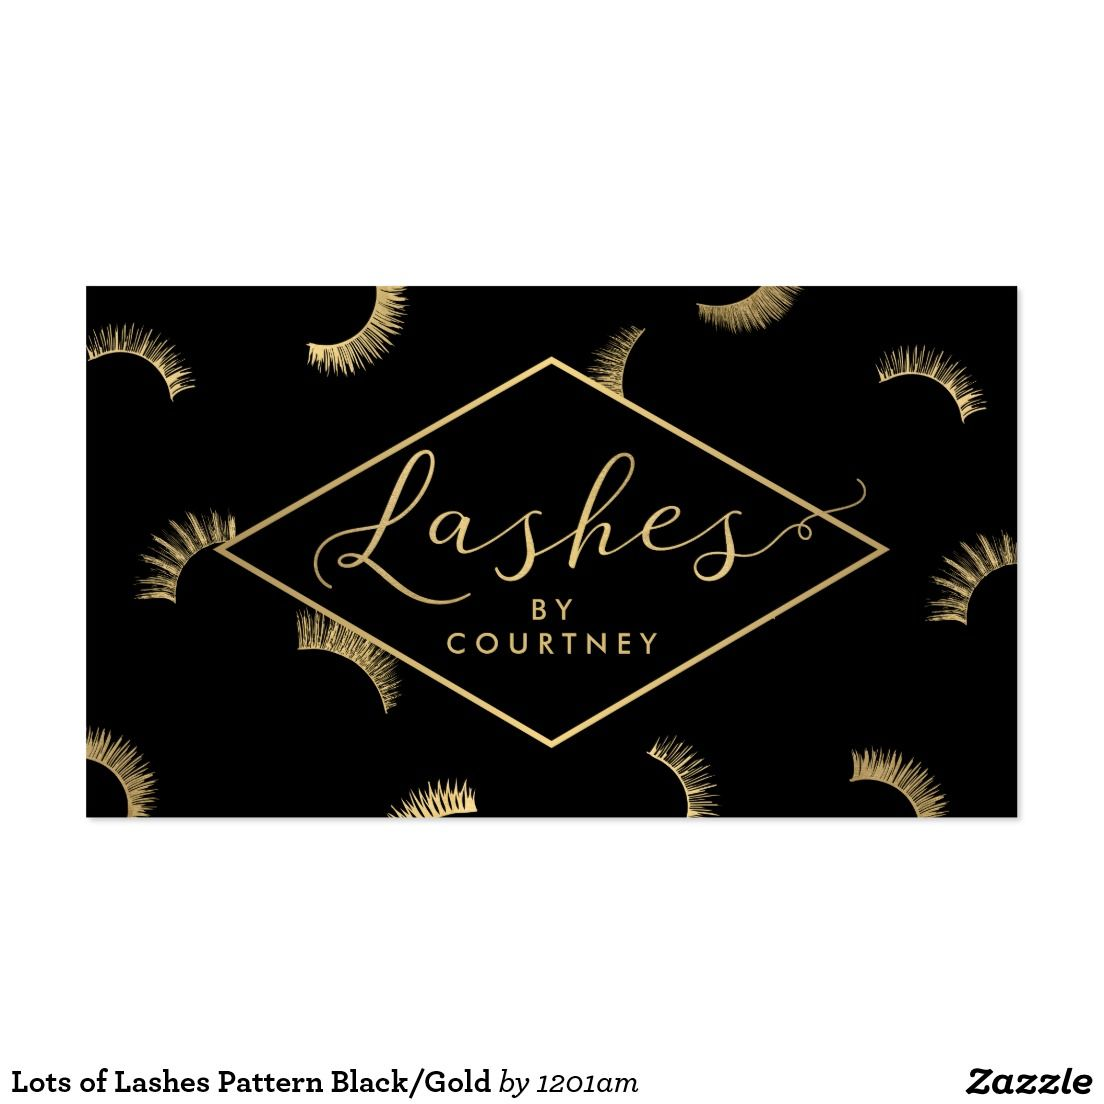 Lots of lashes pattern blackgold business card for lash salon lots of lashes pattern blackgold business card for lash salon magicingreecefo Image collections